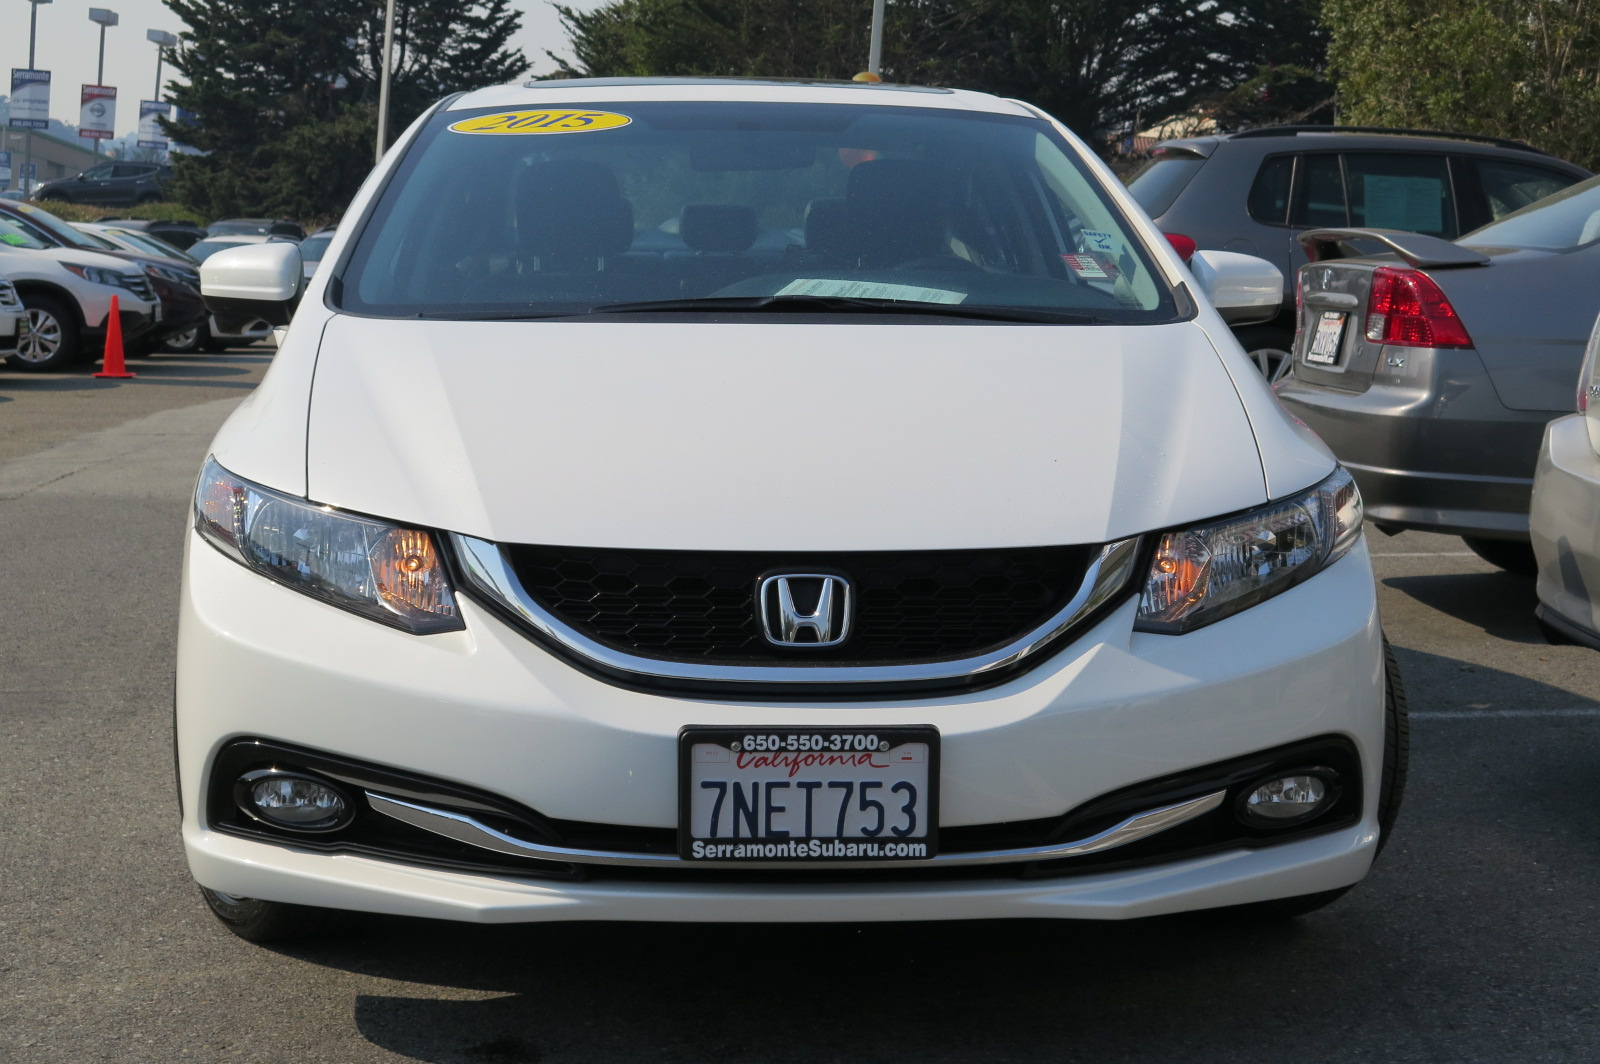 2015 HONDA CIVIC EX-L SEDAN white 4-cyl pzev ivtec 18l automatic leather  power windows  pow